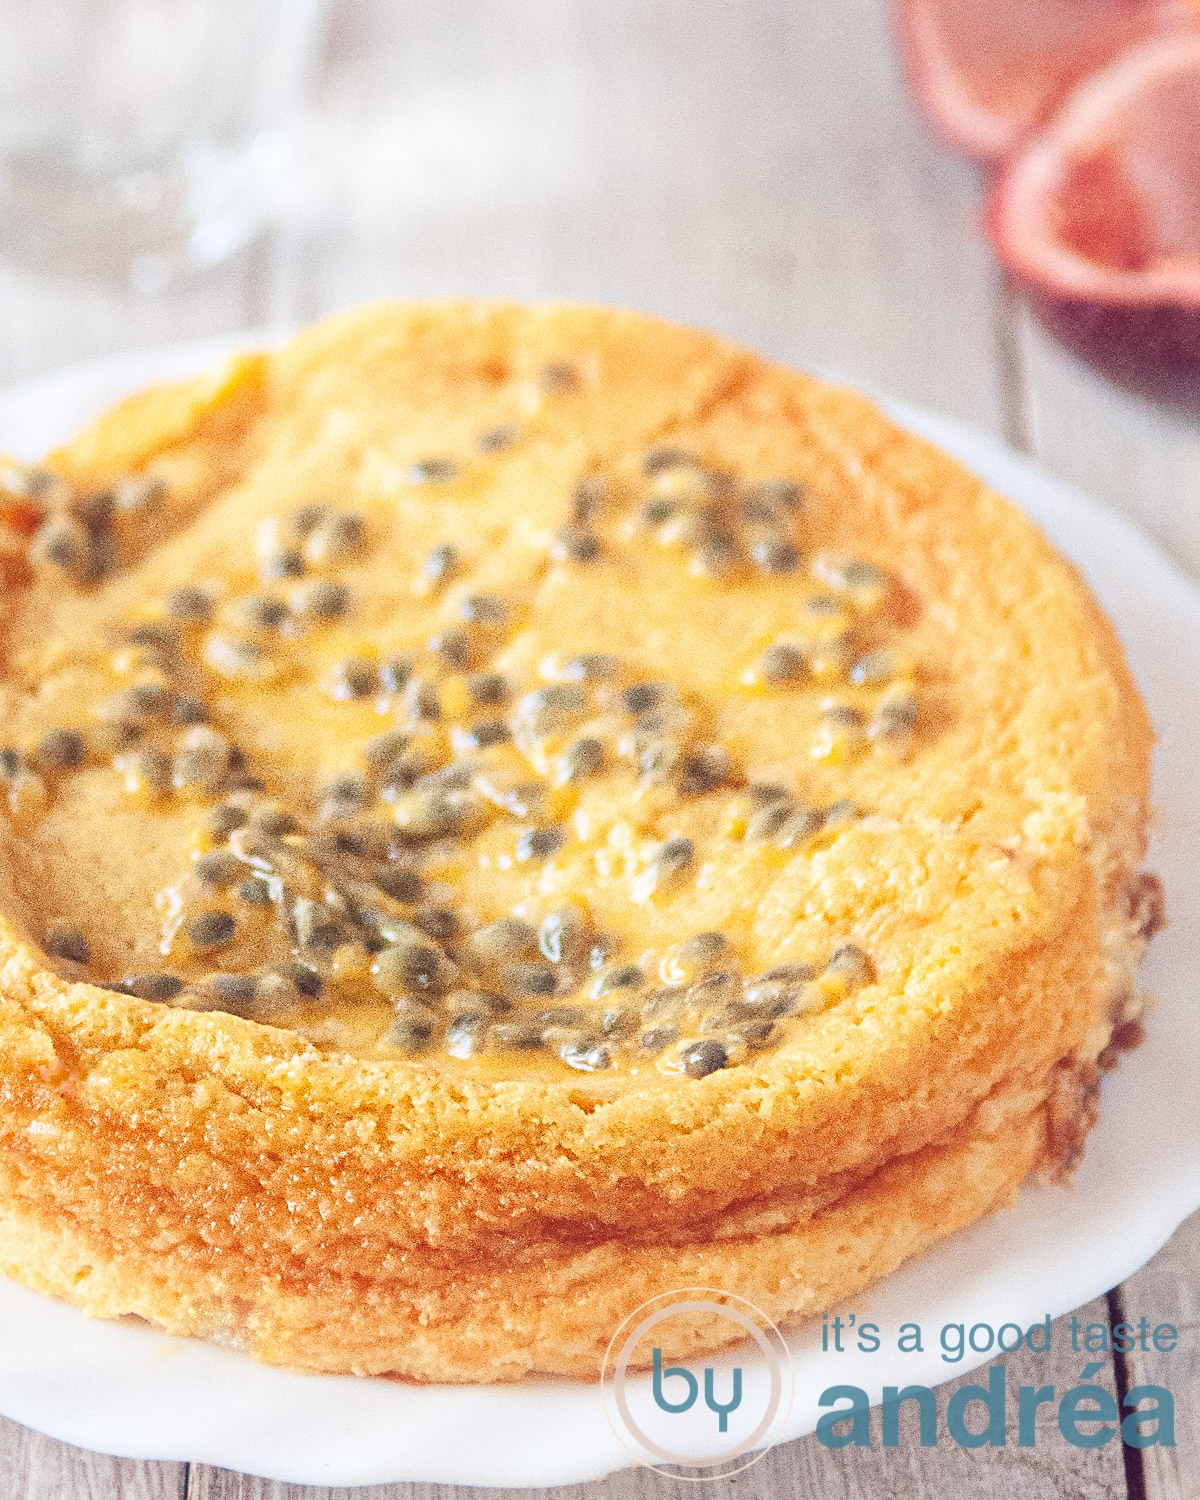 cheesecake recept met witte chocolade en passie vrucht - easy cheesecake recipe with white chocolate and passion fruit